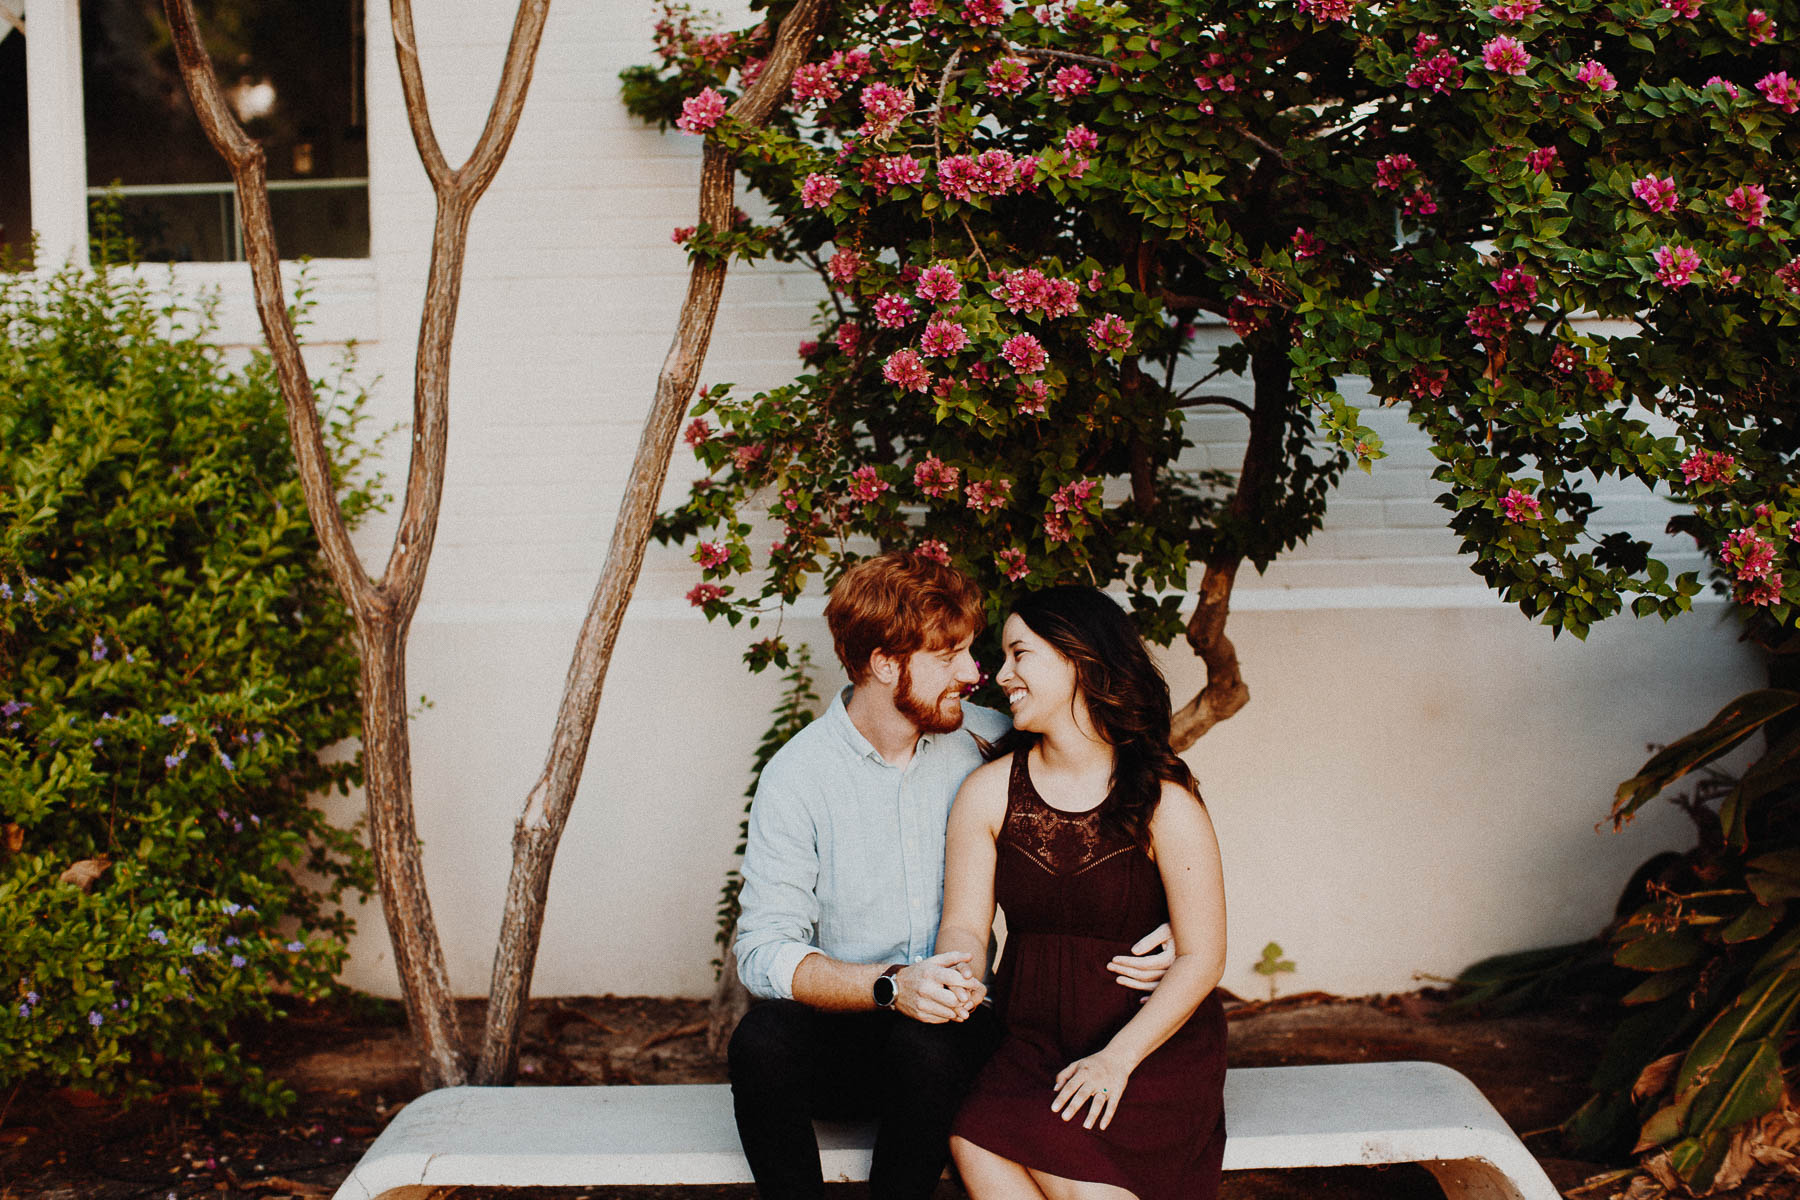 Luxium-Arizona-Wedding-Photographer-@matt__le-ASU-Secret-Garden-Brandon-Kari-3729.jpg